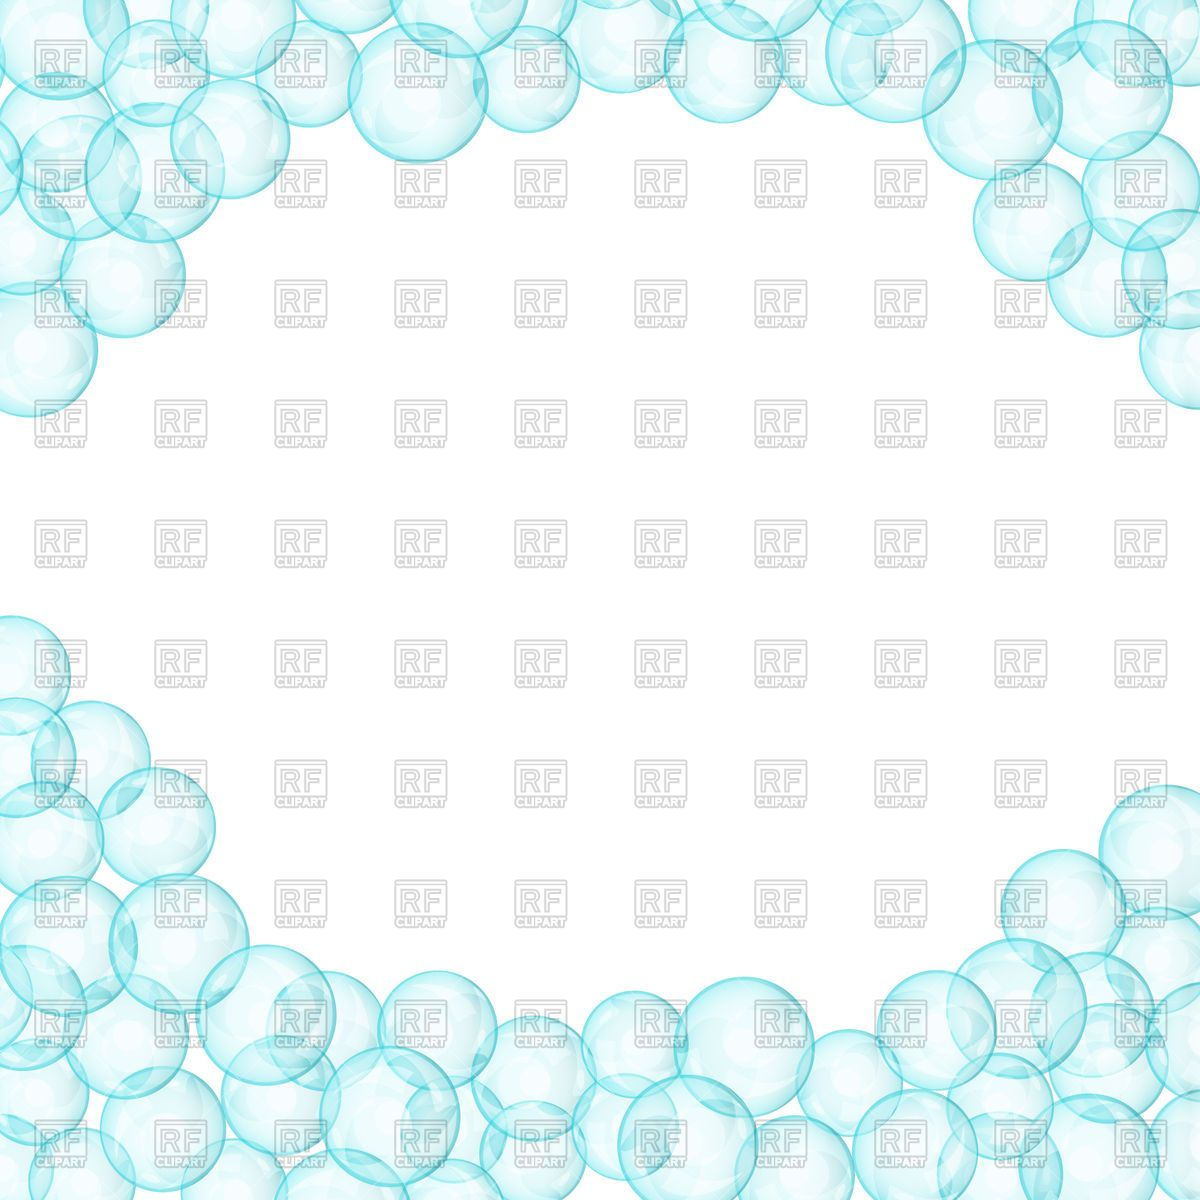 Soap bubble background download free vector art stock graphics - Frame Made Of Soap Bubbles 96662 Borders And Frames Download Free